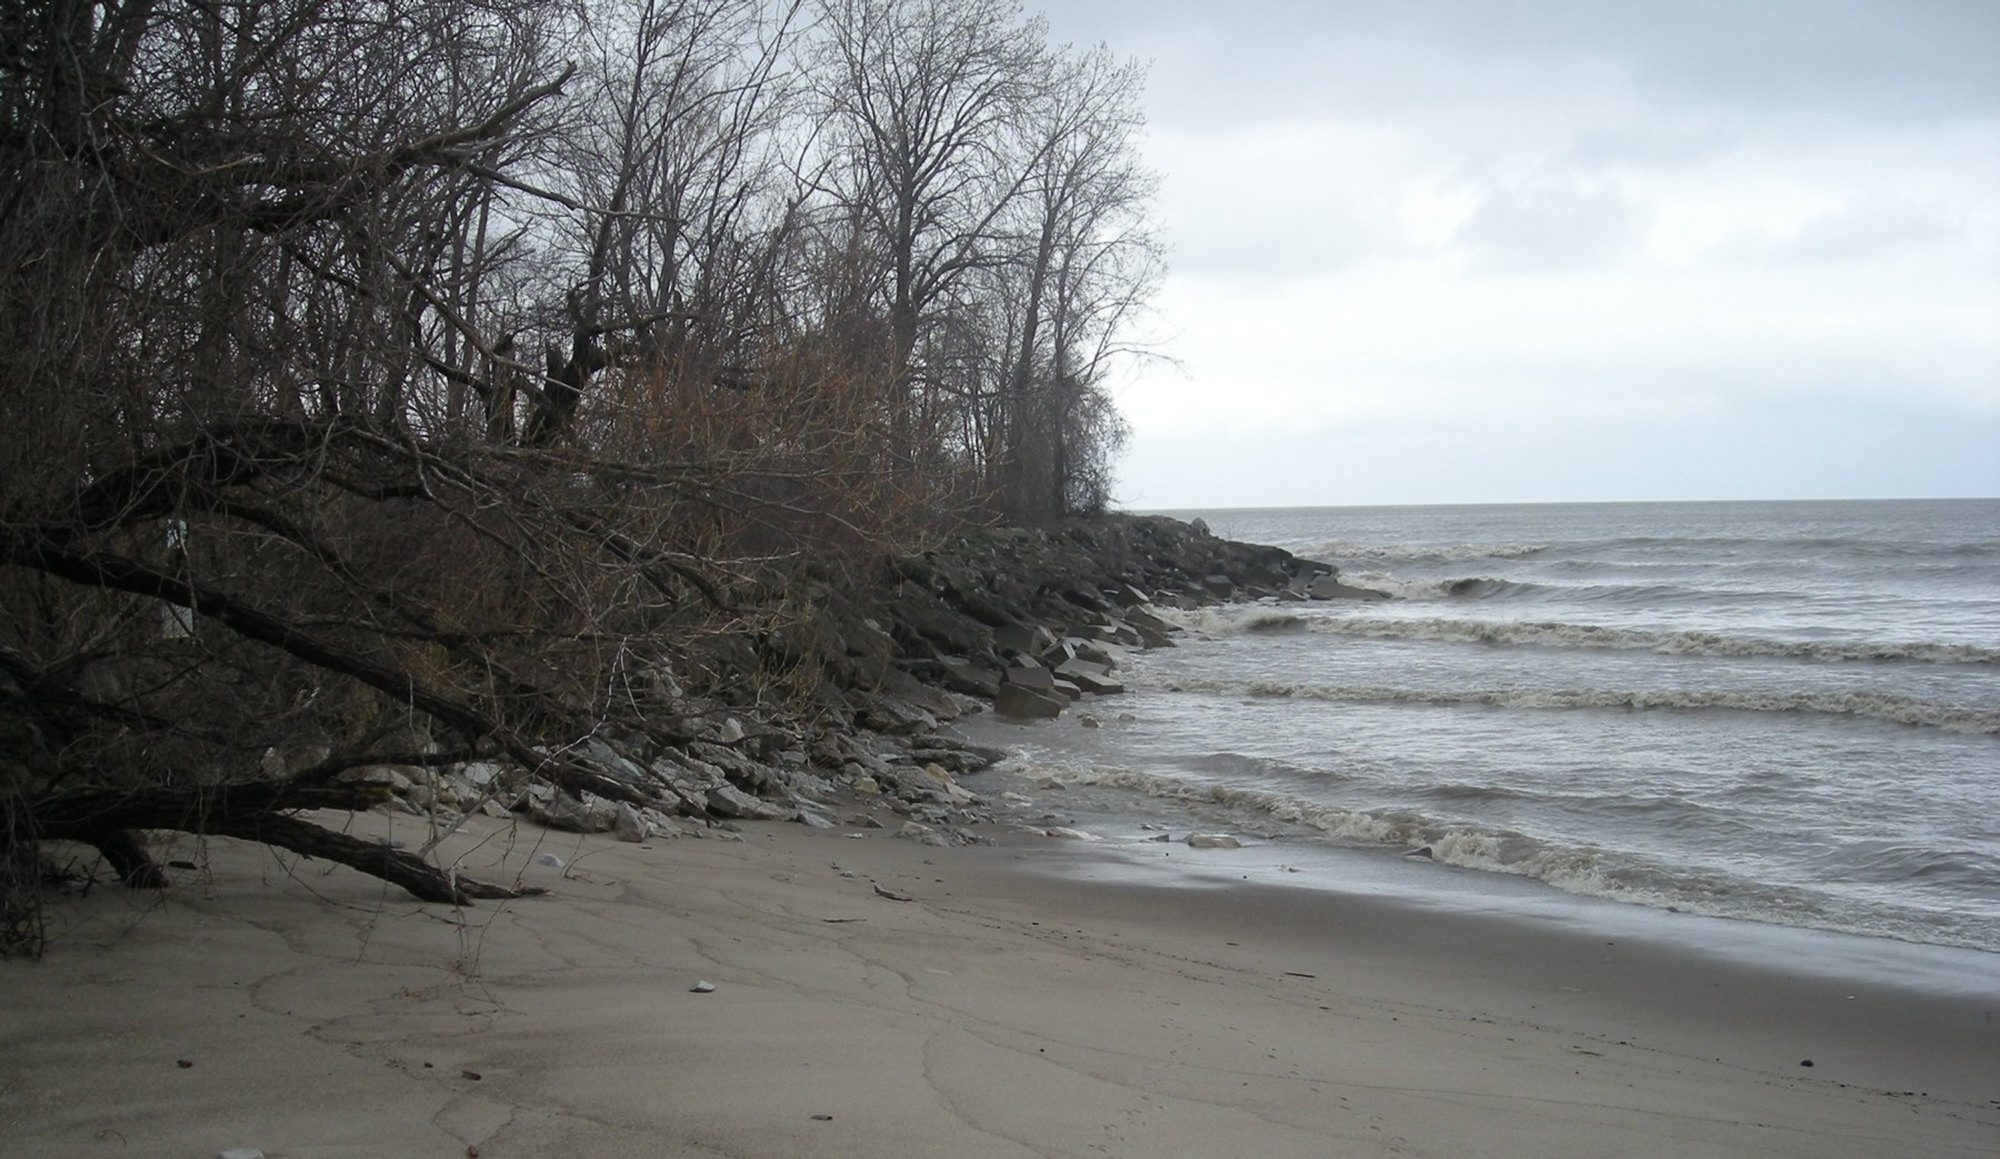 Visitors can find a wild, retreating Lake Erie barrier beach, top, at Sheldon Marsh State Nature Preserve near Huron, Ohio. It stretches 1.13 miles and protects the wetlands, above, from waves. The 463-acre nature preserve is popular with birders.